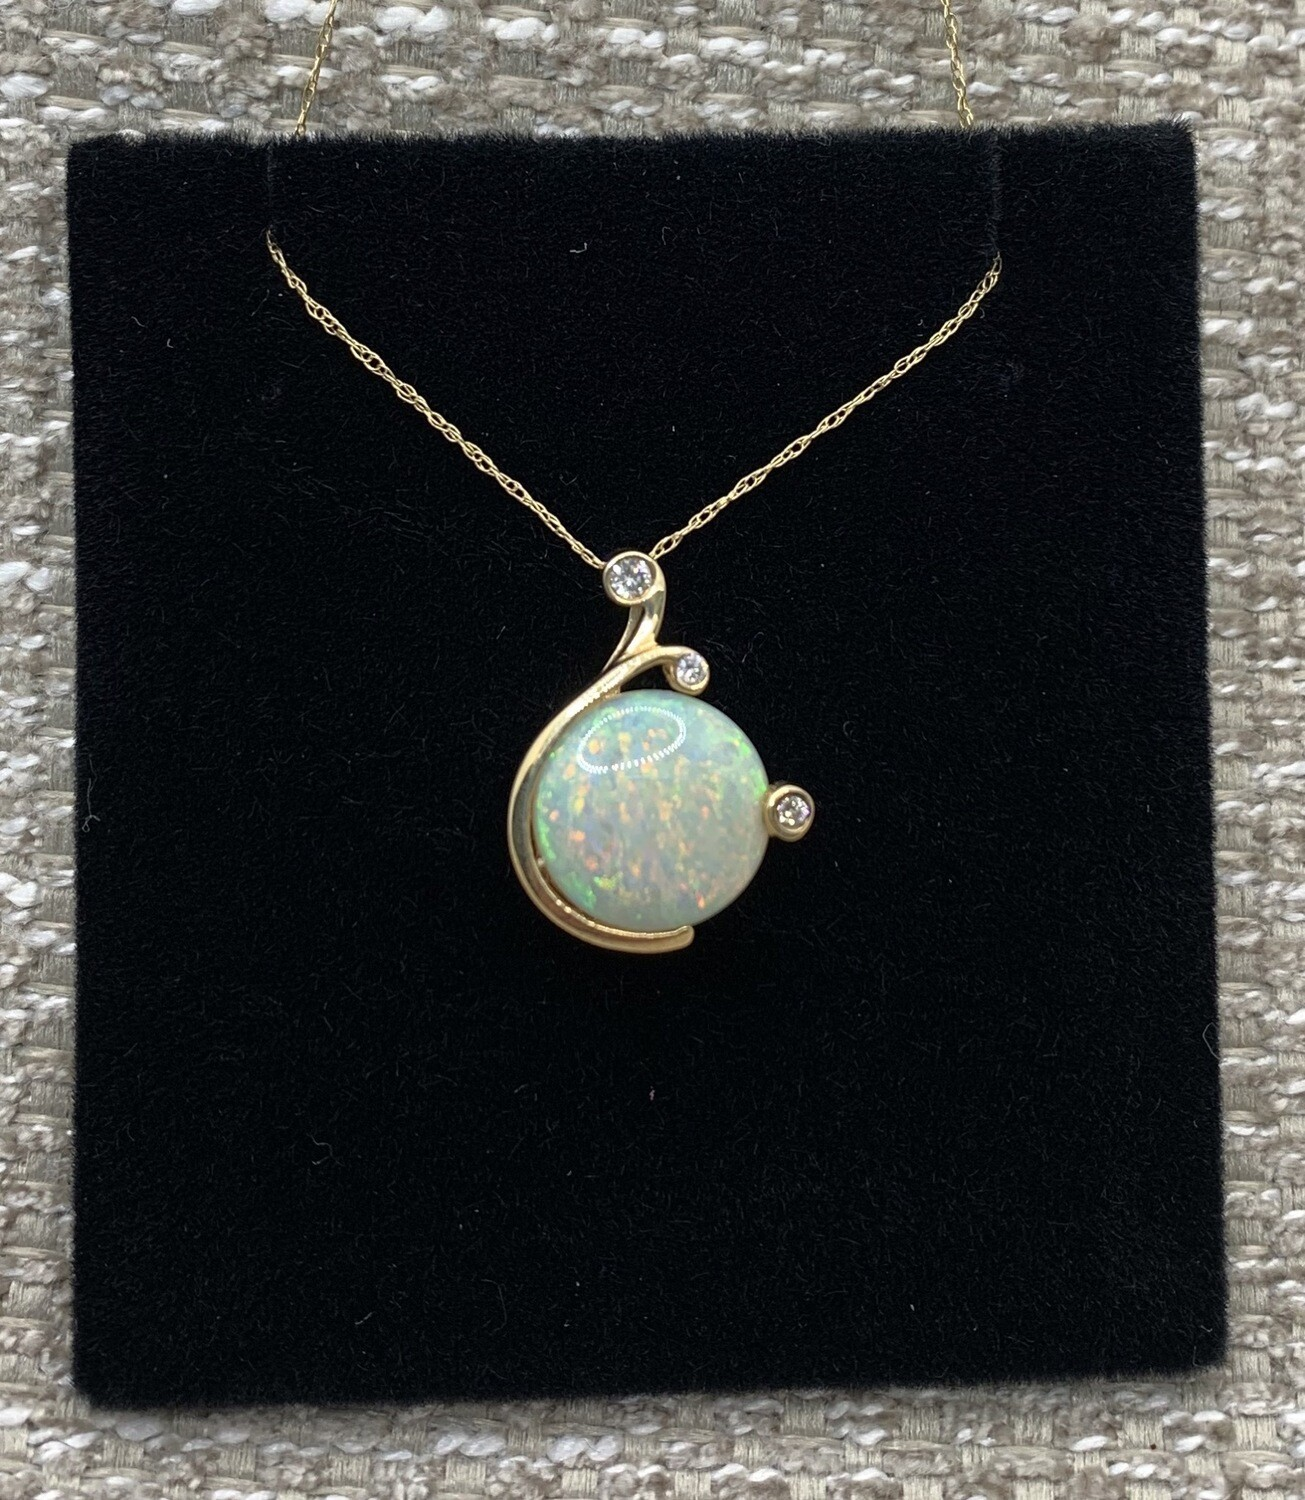 3.3ct Opal With Dual Diamond Accents Pendant